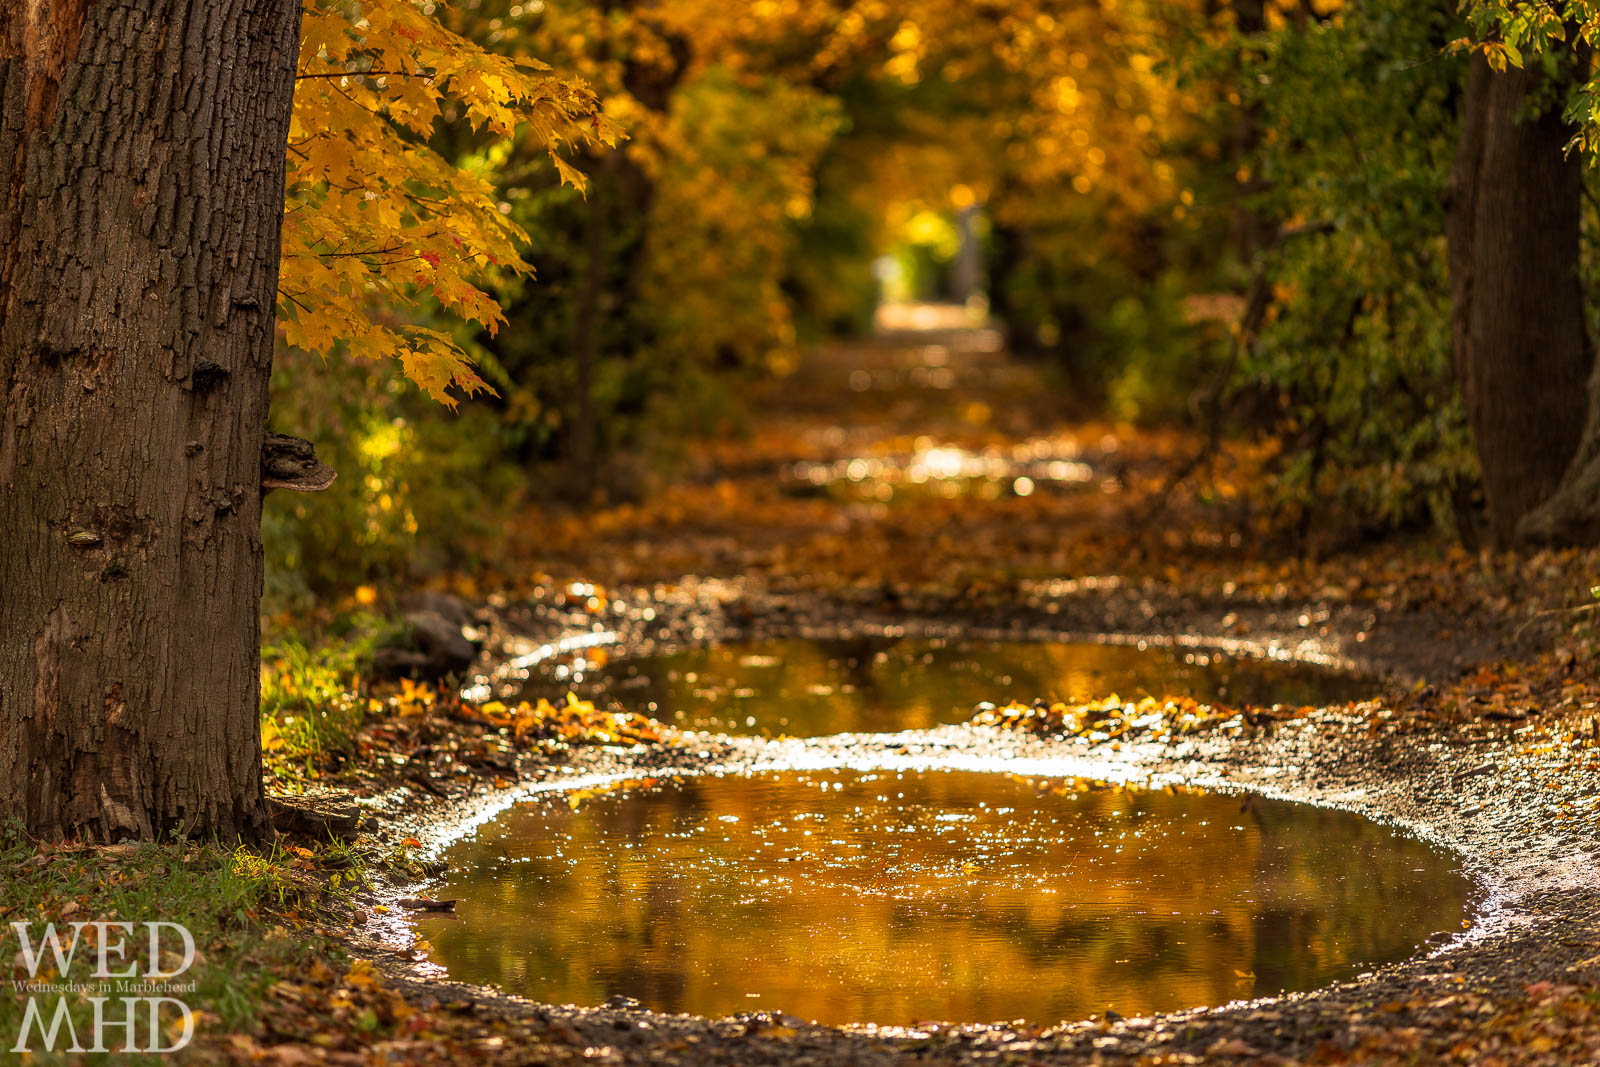 A pool of rainwater appears as liquid gold with fall foliage reflecting in its still surface on Ware Lane